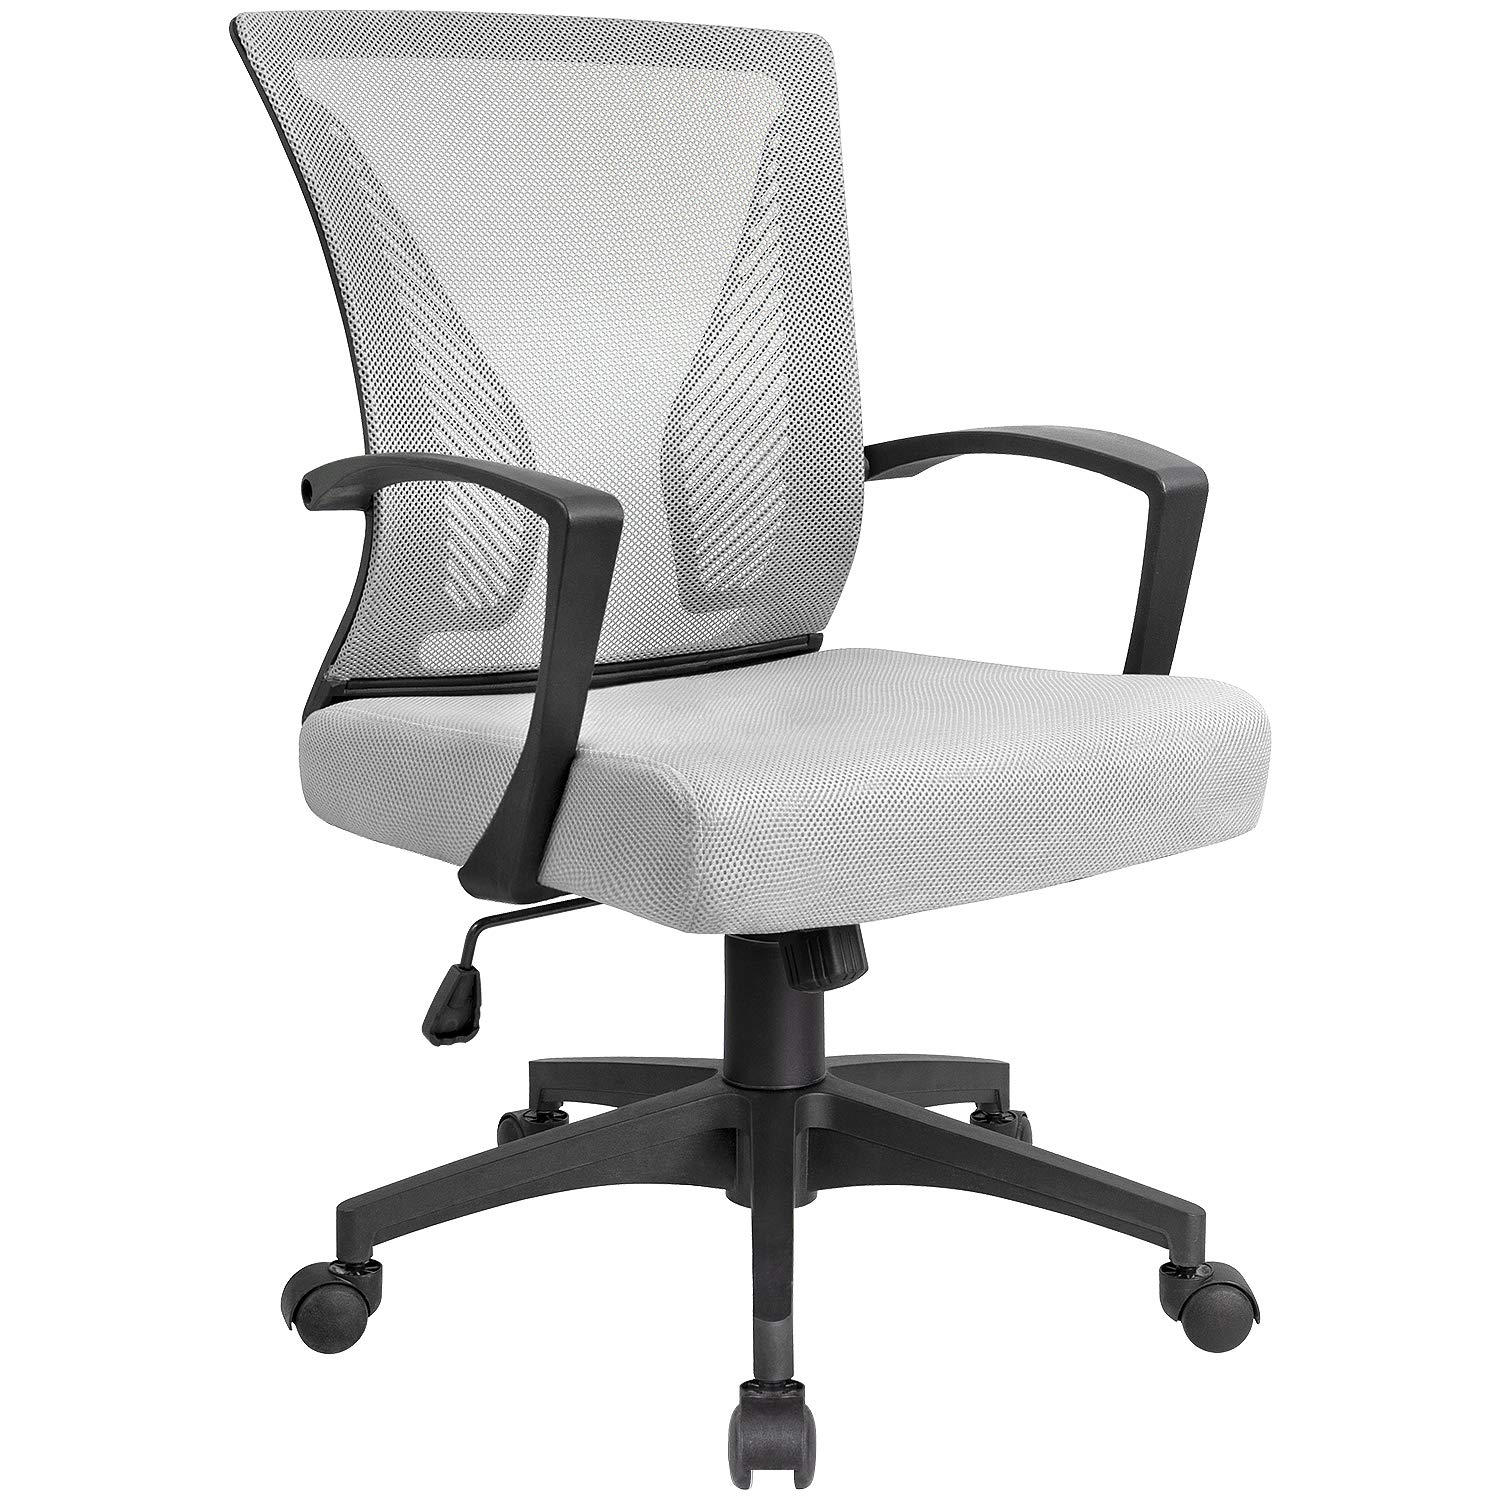 KaiMeng Mid Back Office Chair Ergonomic Computer Chair Desk Chair with Lumbar Support (Gray) by KaiMeng